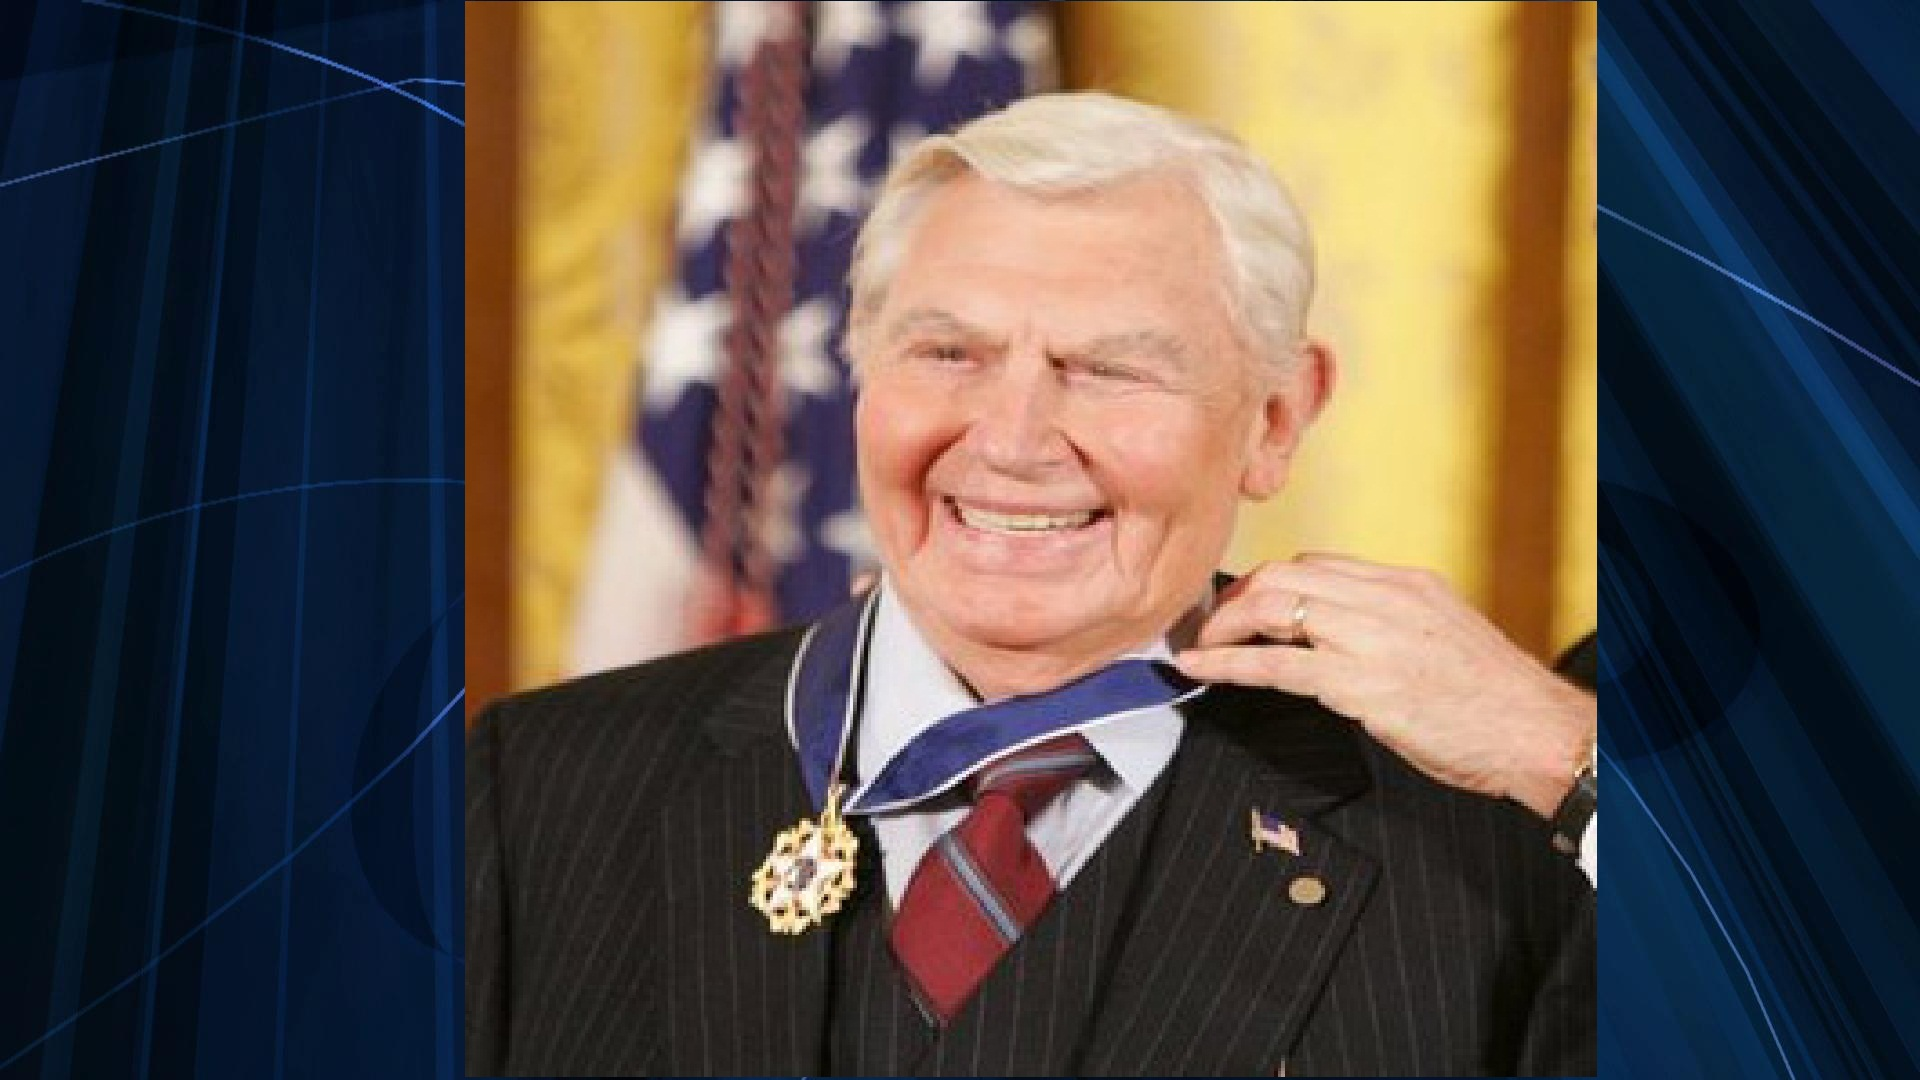 Andy Griffith was awarded the Presidential Medal of Freedom by George W. Bush in 2005